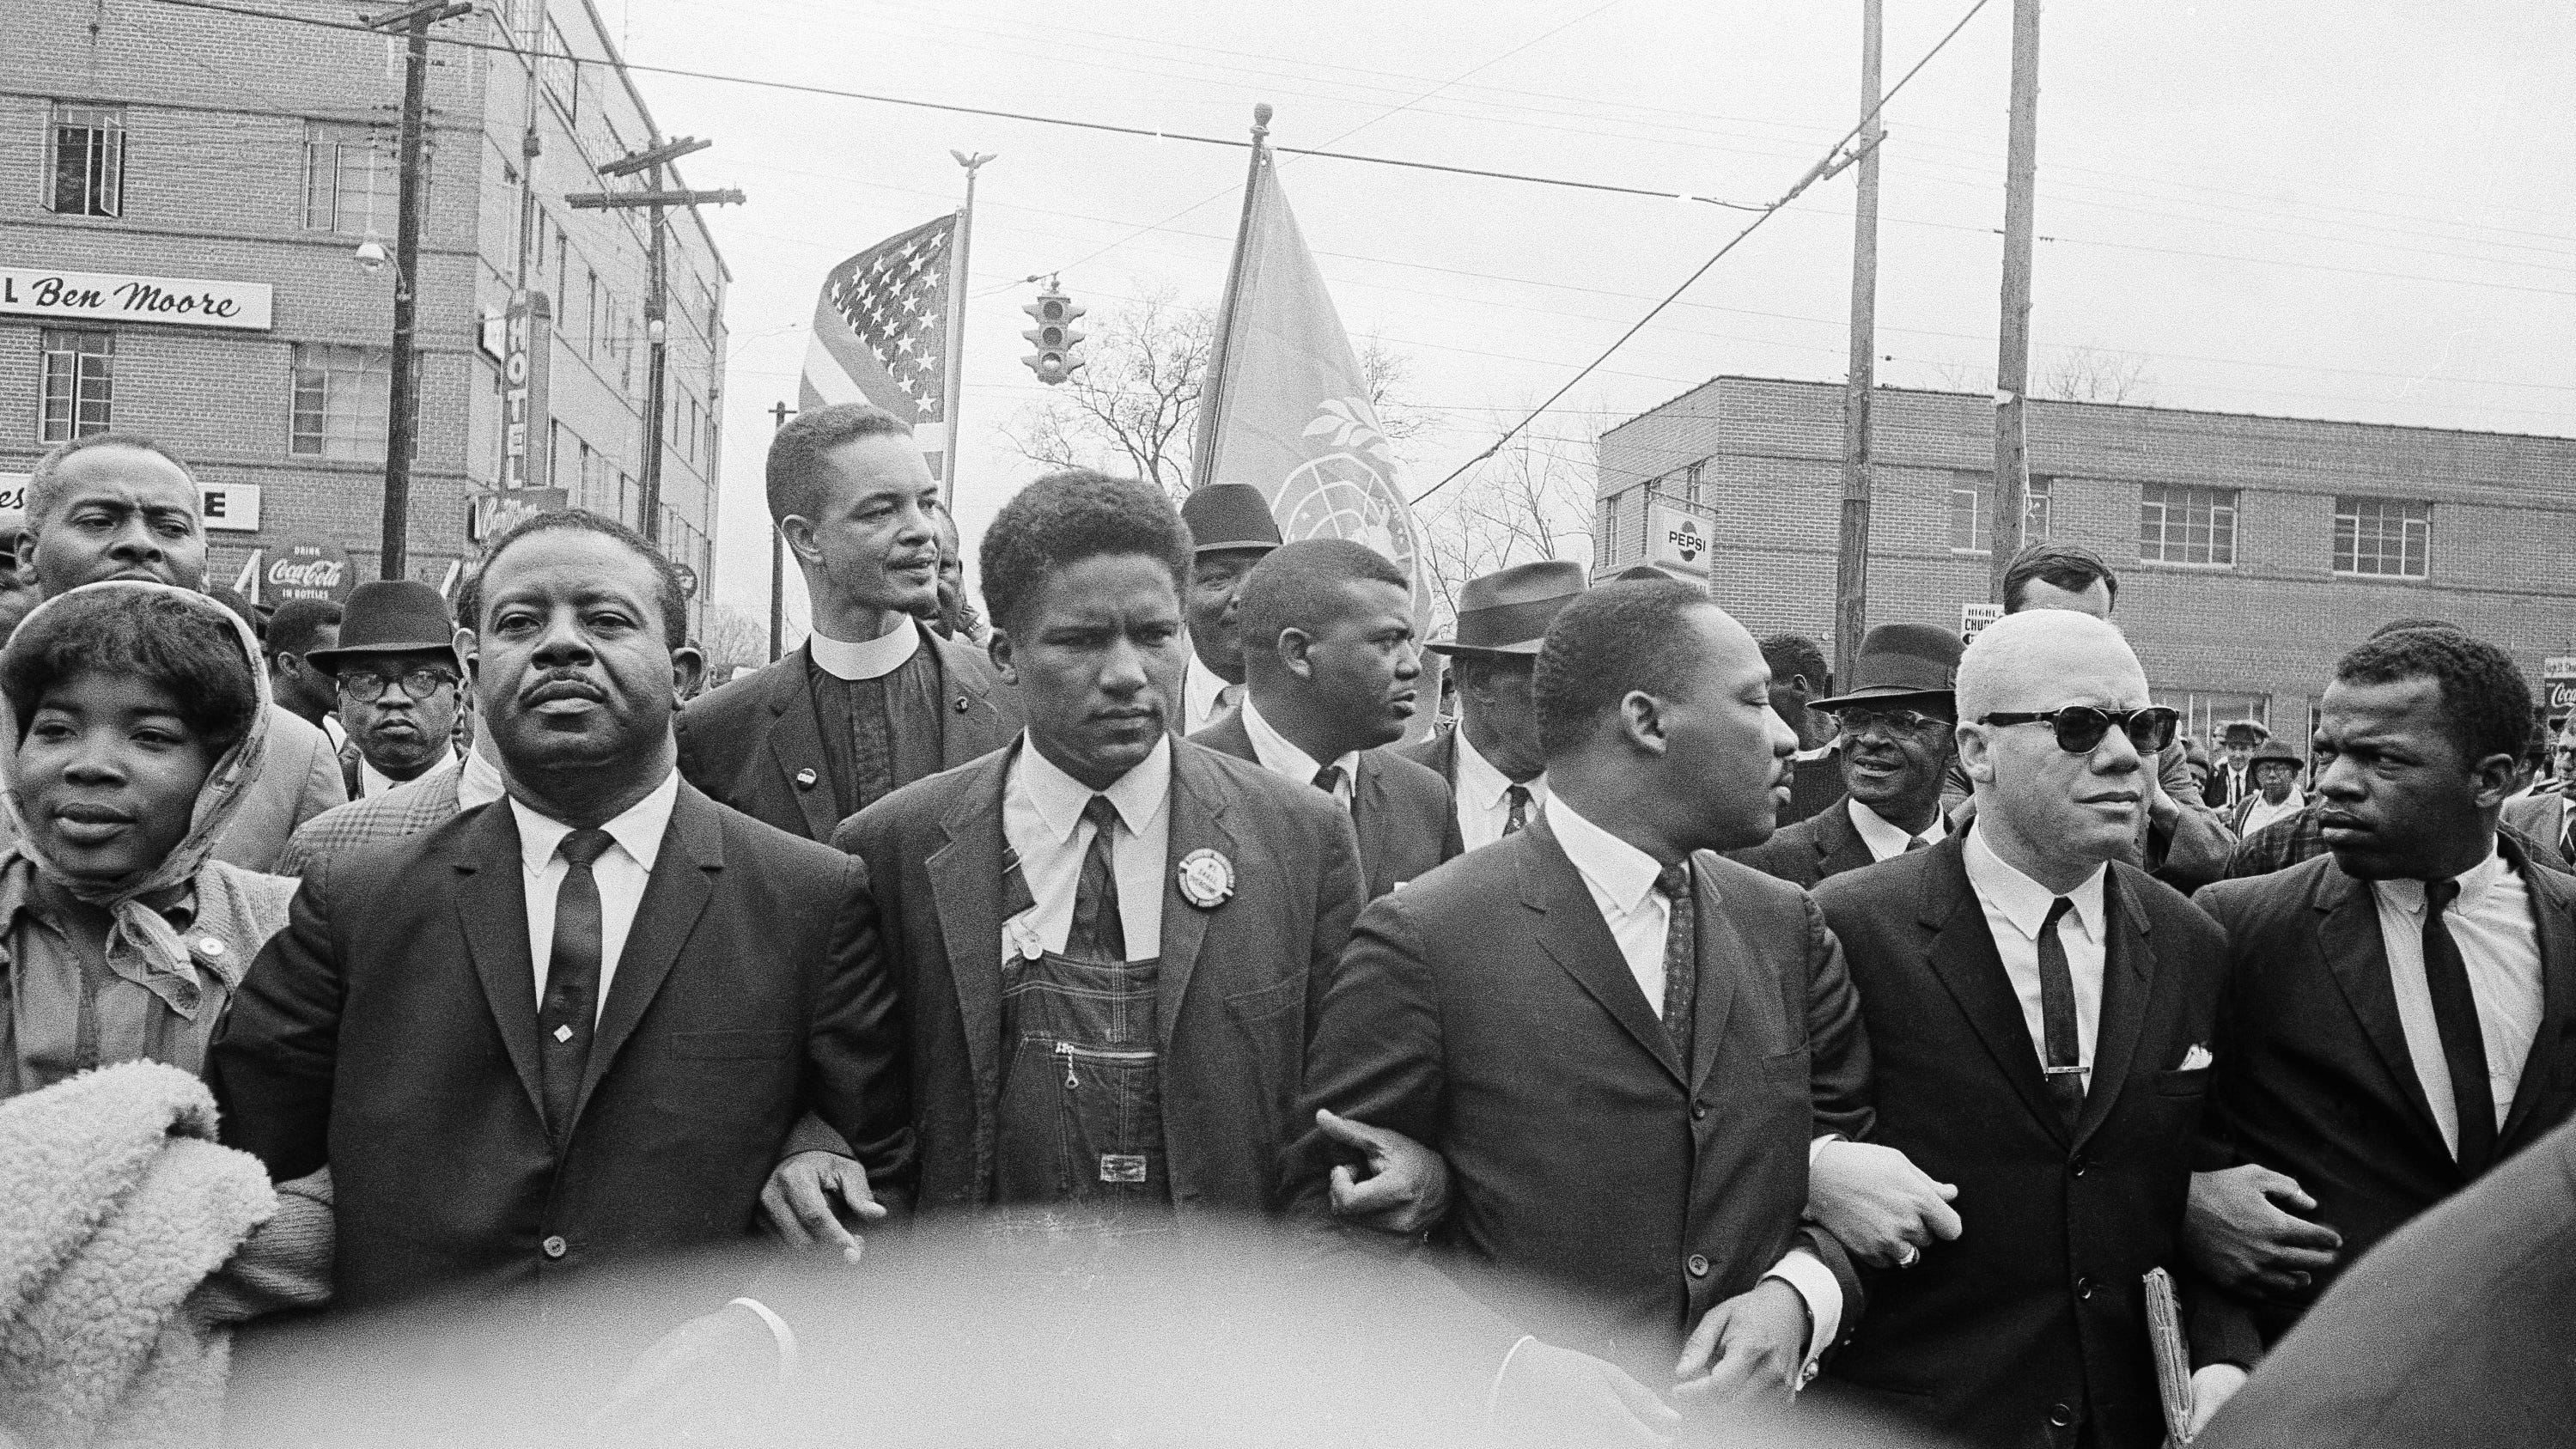 John Lewis was the voice of history, conscience and hope ...